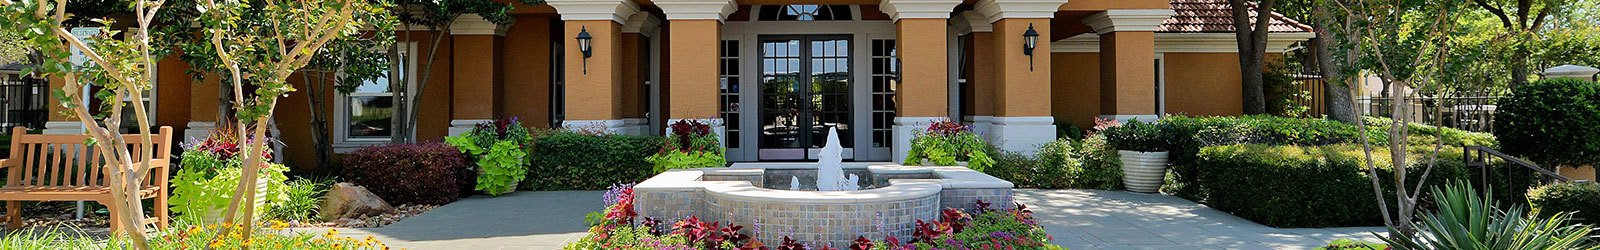 Saxony at Chase Oaks in Plano, TX